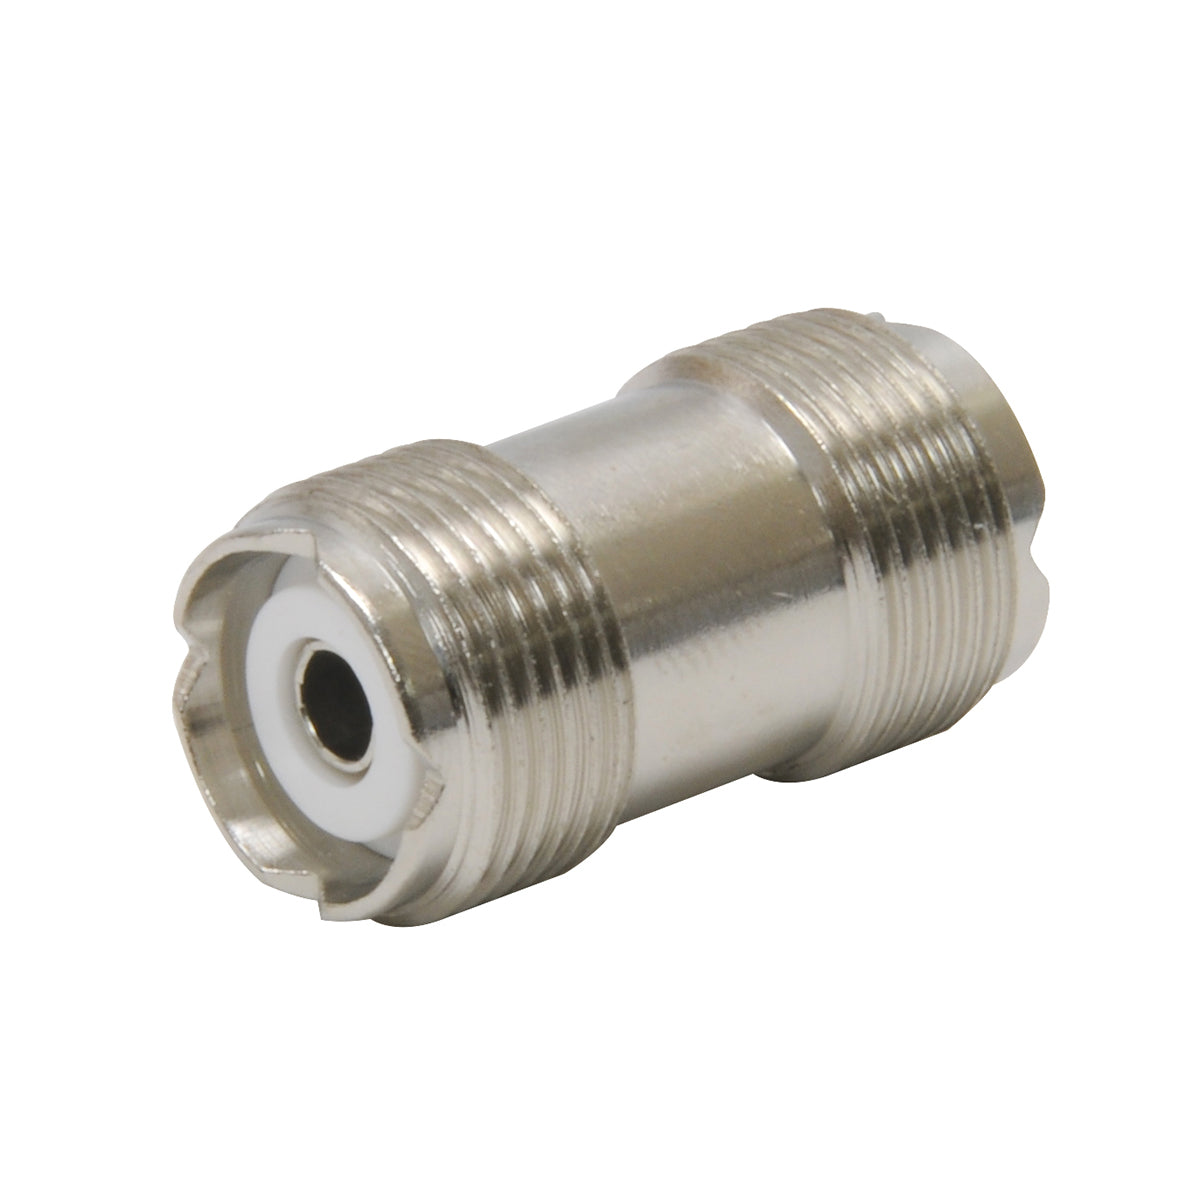 Female to Female SO-239 Coax Connector